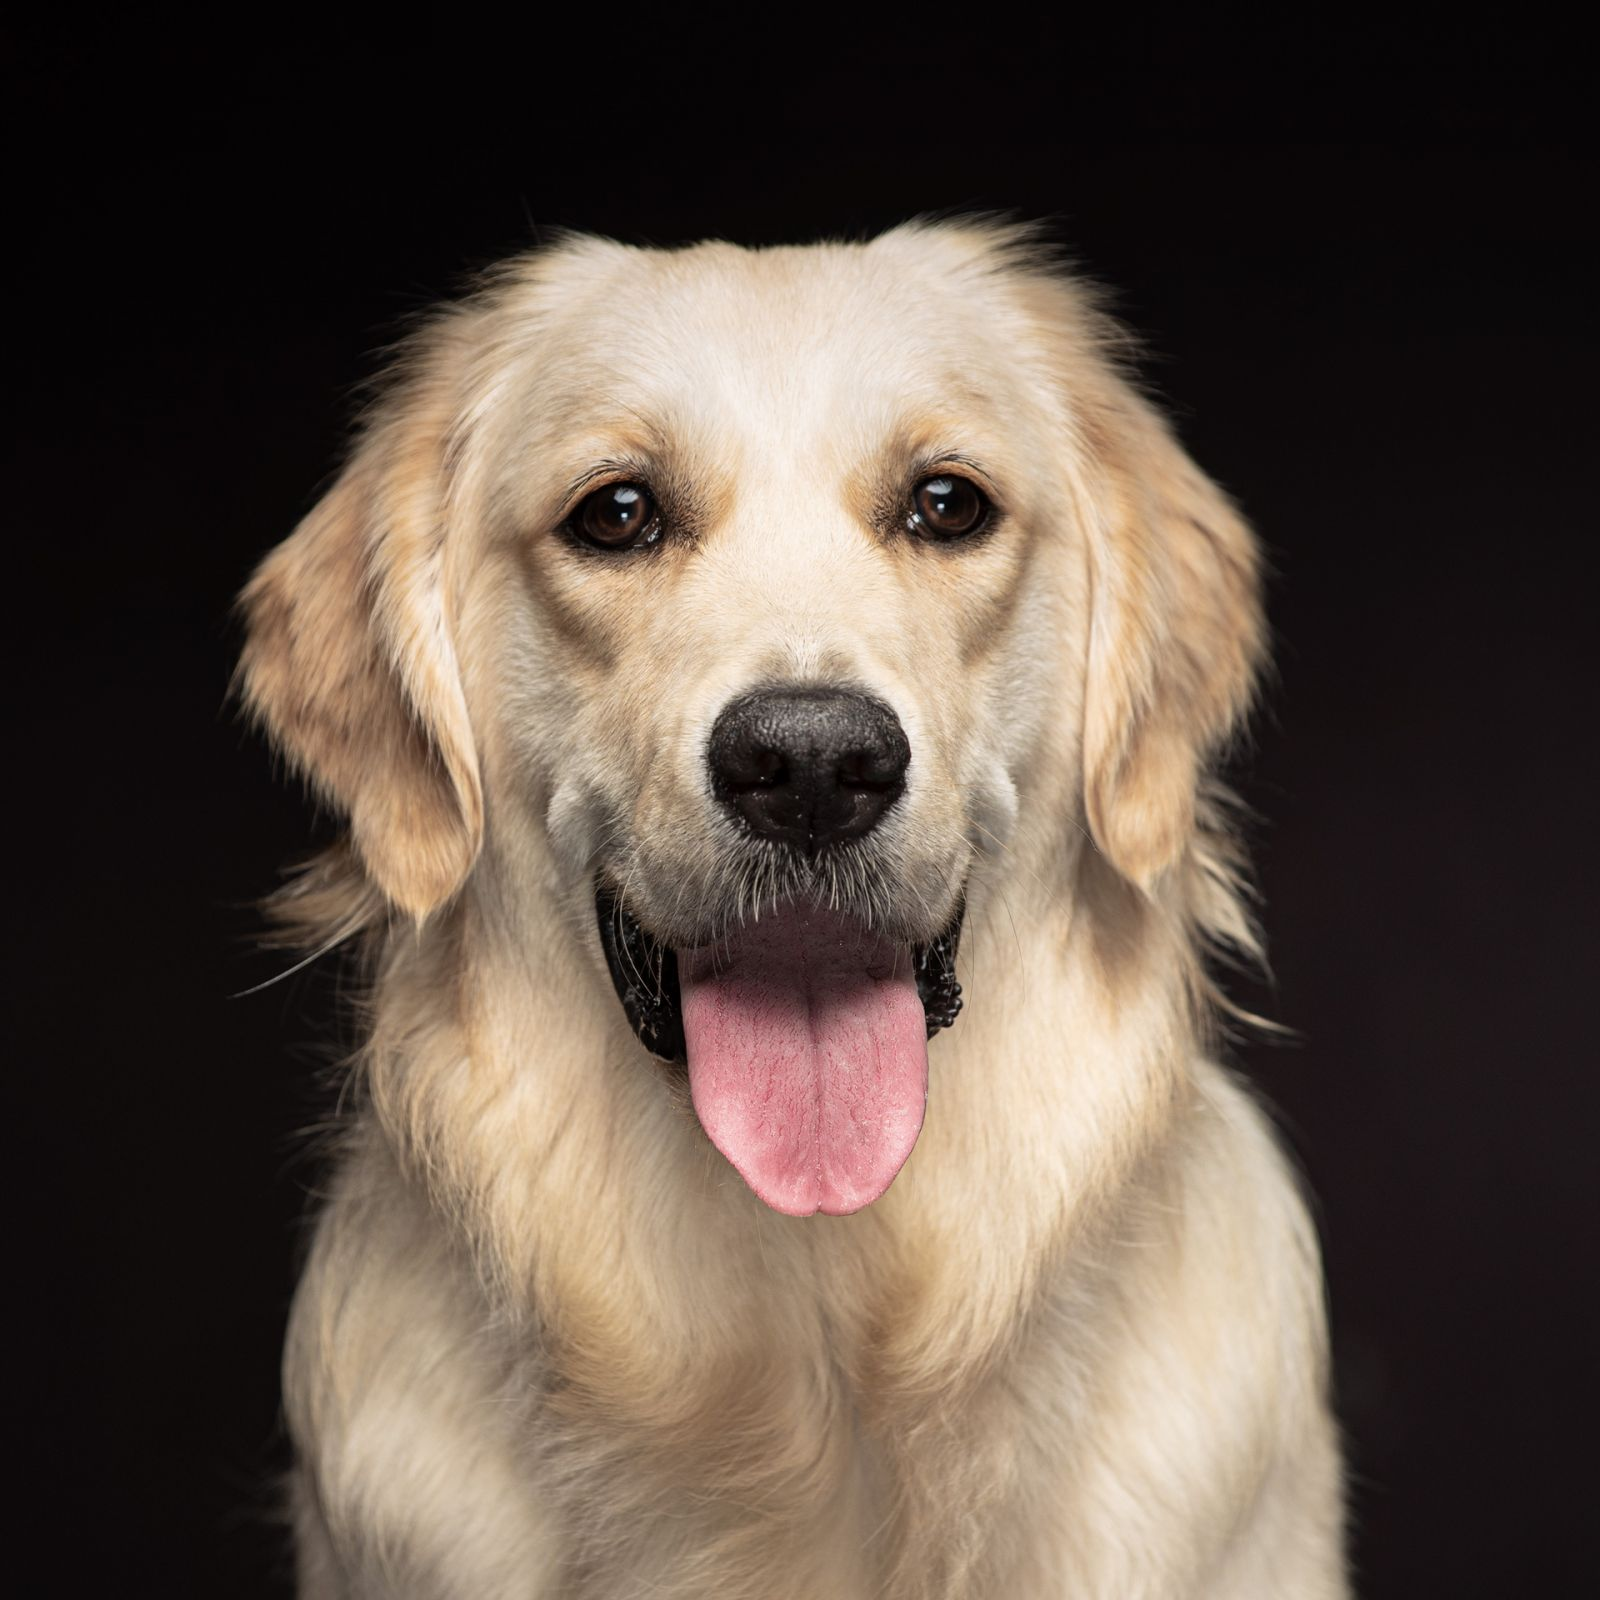 Larbrador Retriver with tongue out portrait with black background